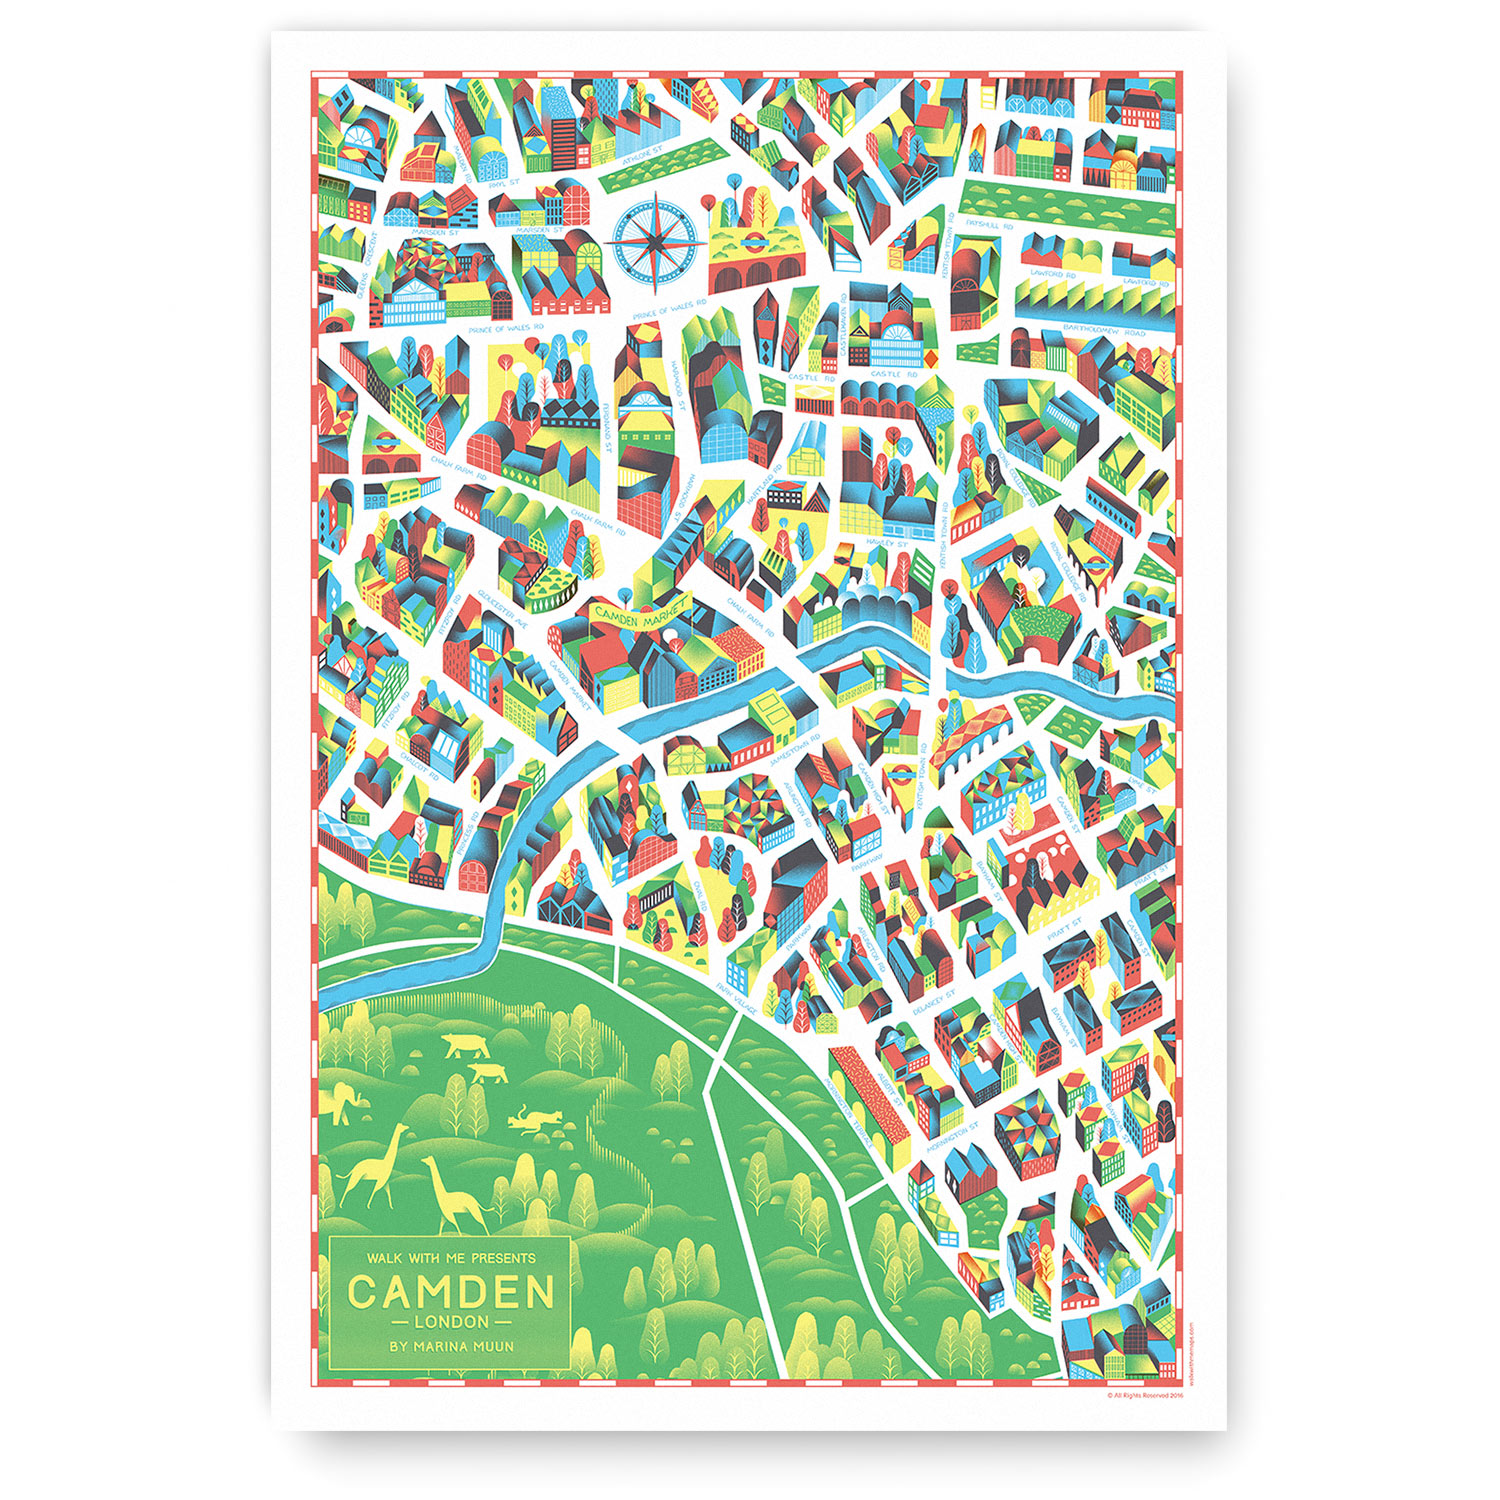 Camden Town Illustrated Map Illustrated Map Print on historical map of london, art map of london, painted map of london, business map of london, black map of london, color map of london, interactive map of london, simple map of london, watercolor of london, graphic map of london, travel map of london, childrens map of london,